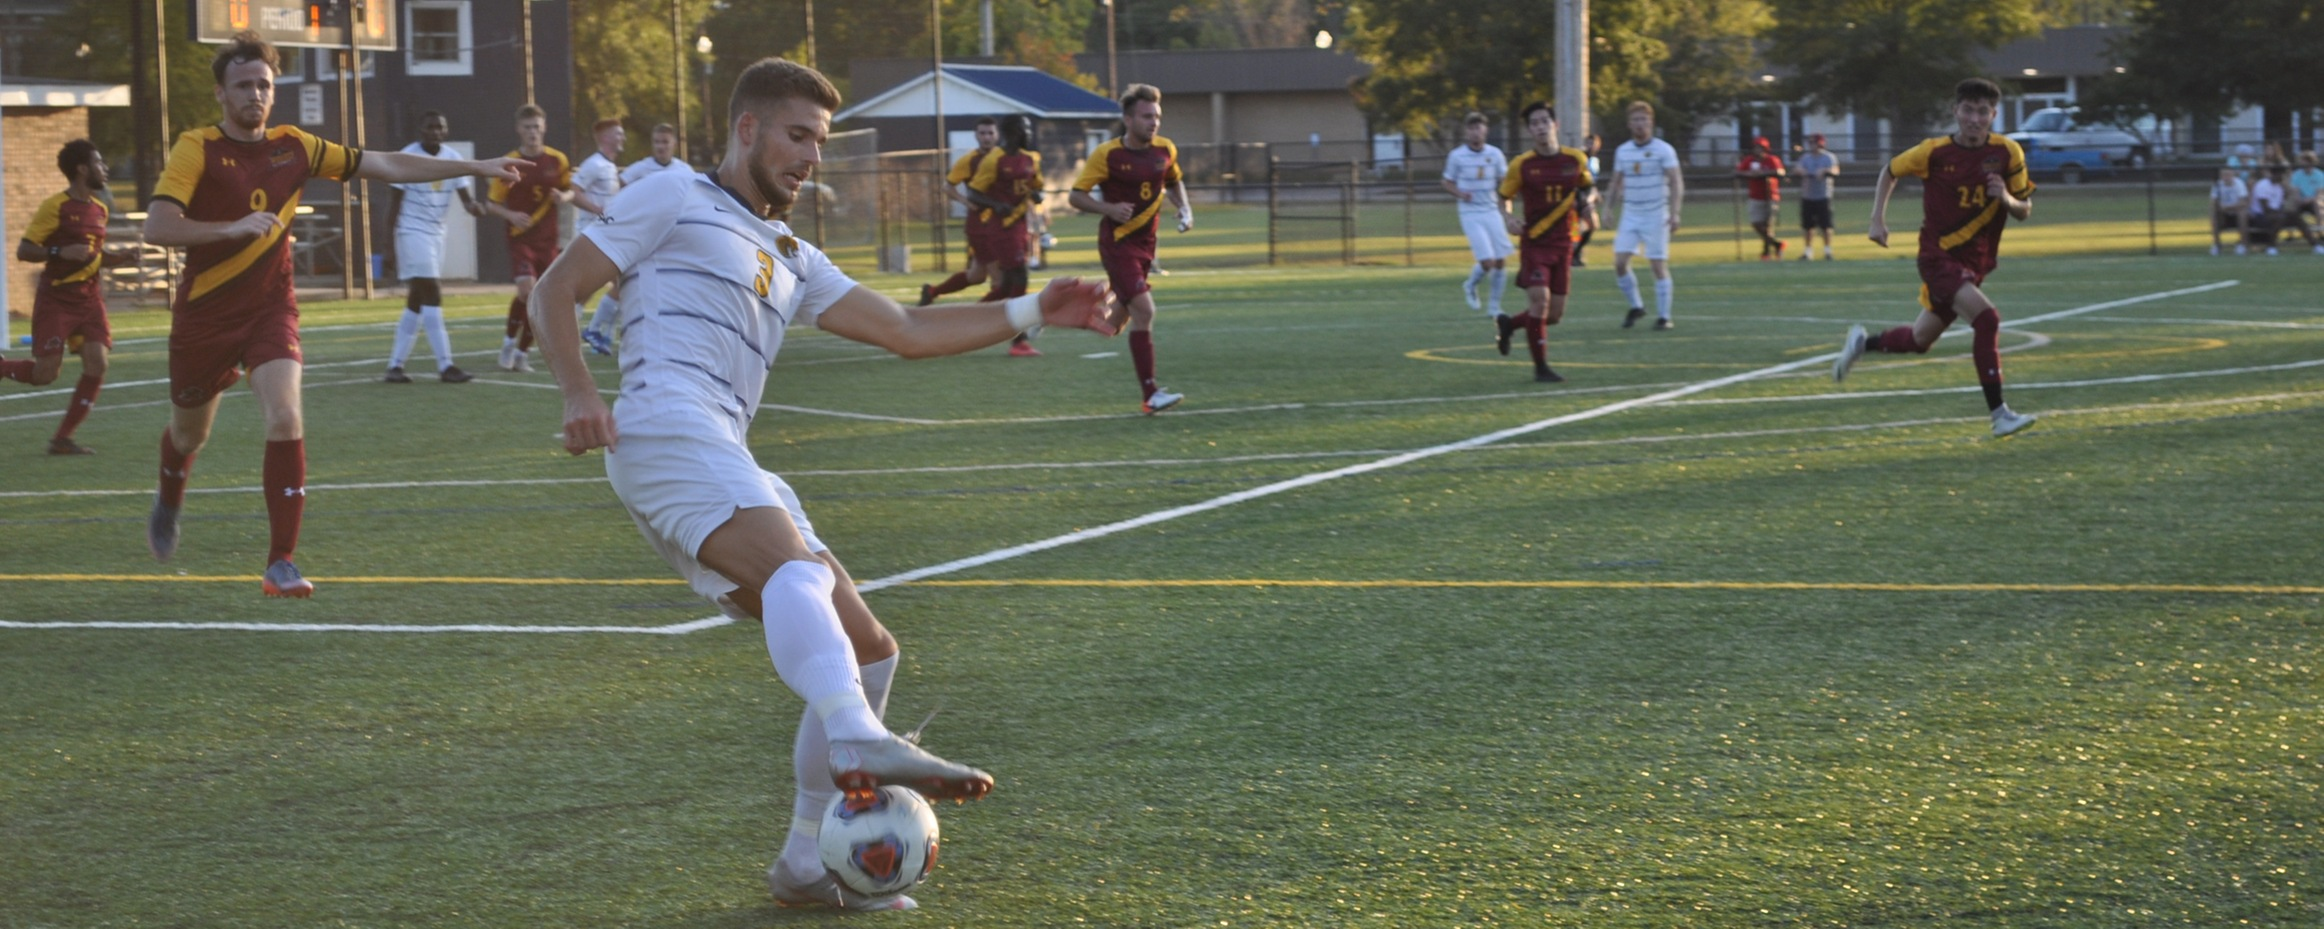 Four Second Half Goals Fuel Coker's Win Over Catawba